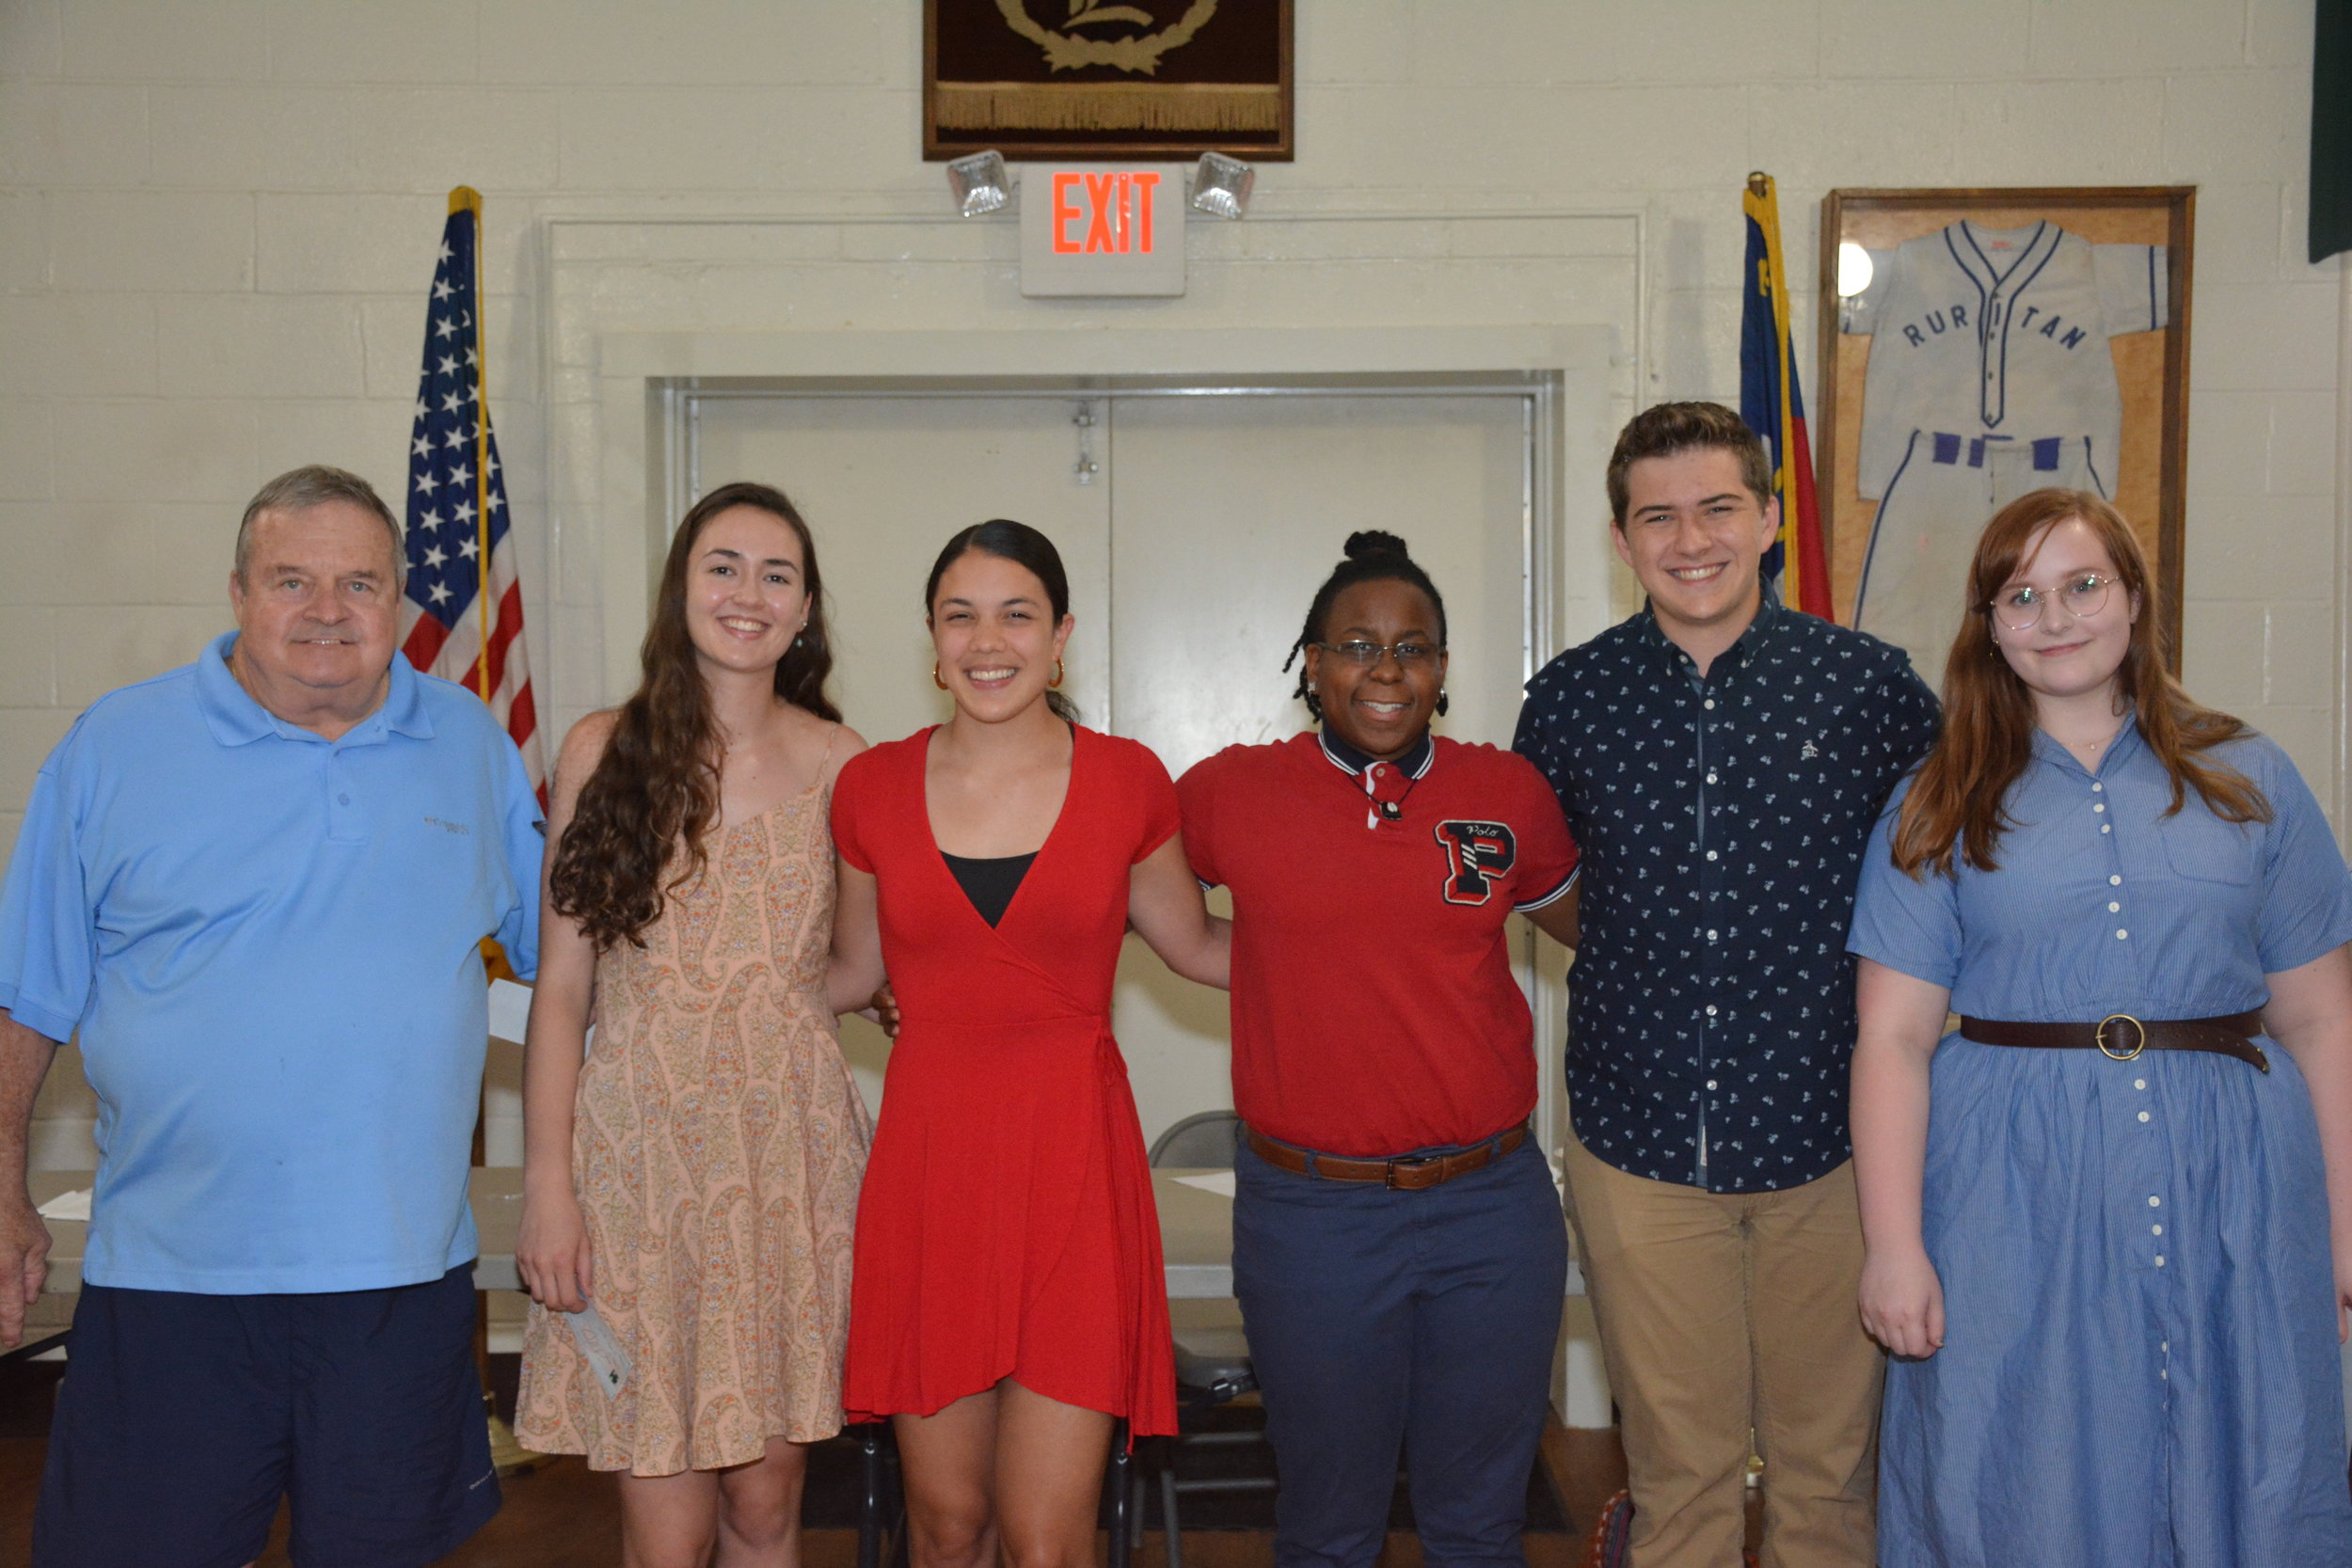 Left to Right: Chip Gill (Efland Club president); Mason Henry and Natalia Garay (Cedar Ridge HS); Namron Chapman (Orange HS); Jorden Madren and Tessa McGuire (Eno River Academy)